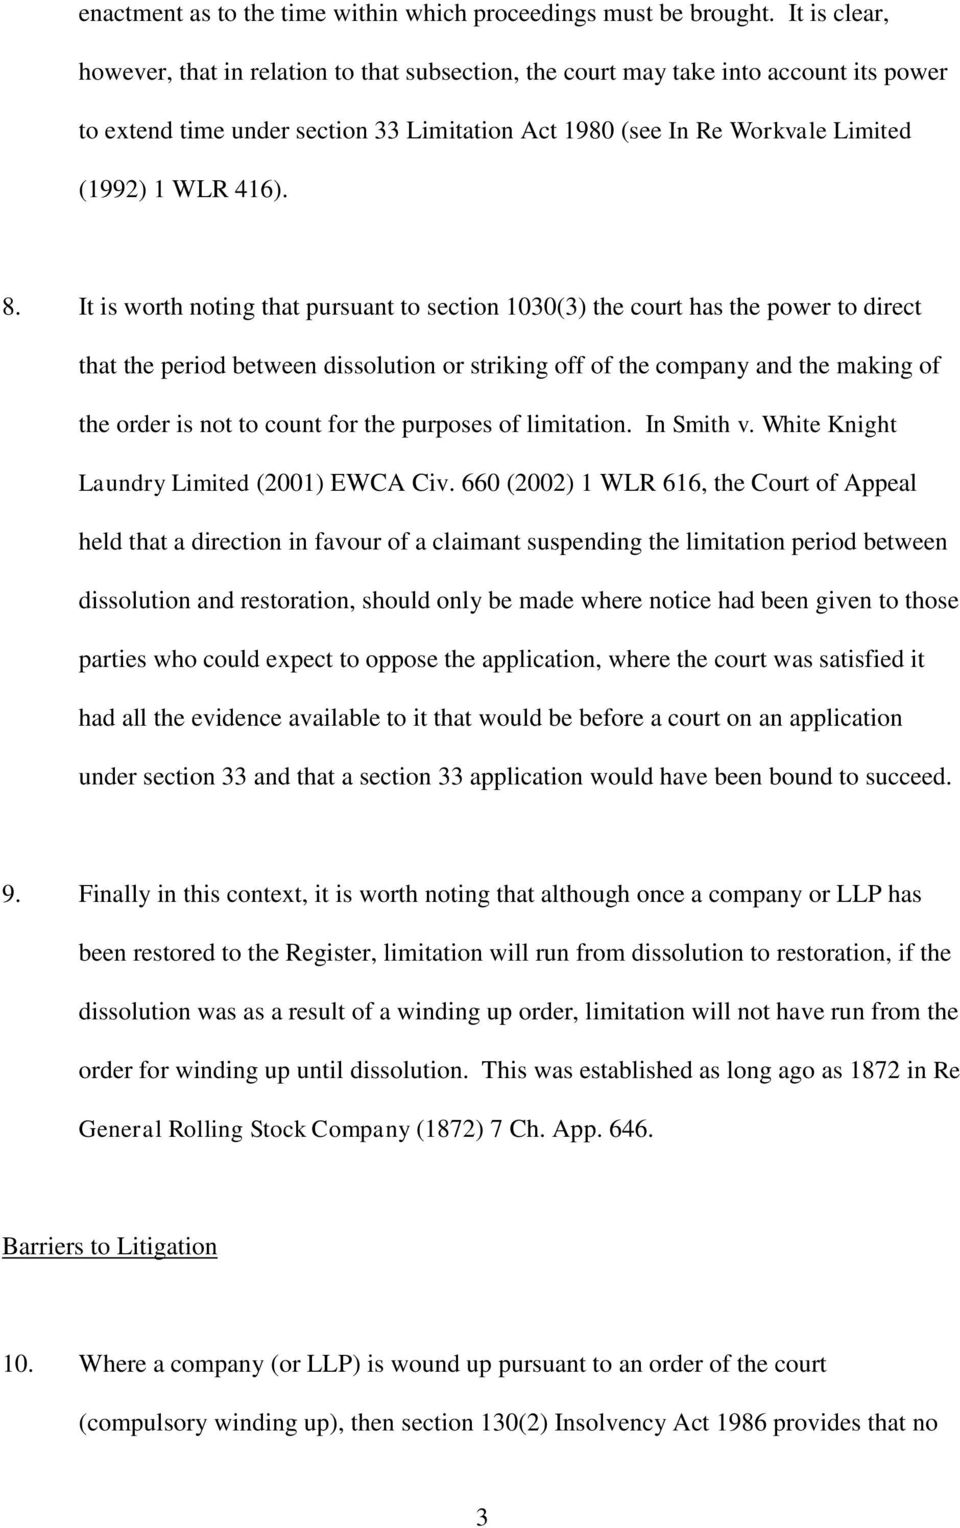 8. It is worth noting that pursuant to section 1030(3) the court has the power to direct that the period between dissolution or striking off of the company and the making of the order is not to count